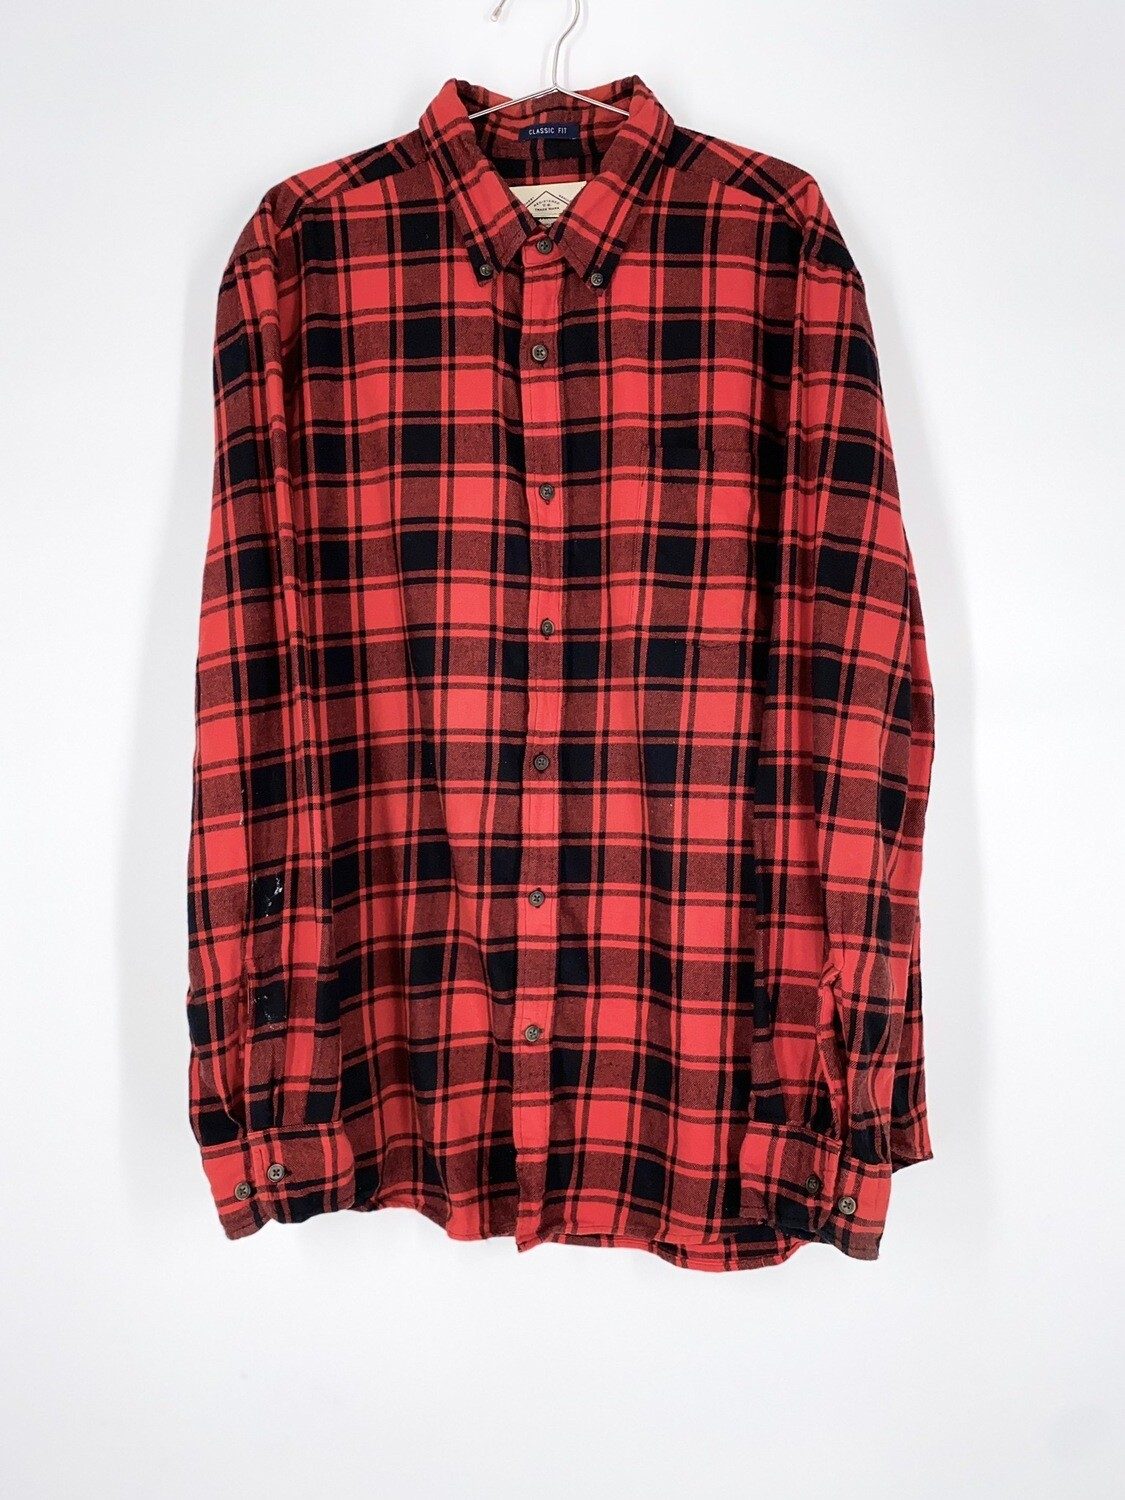 Red Plaid Button Up Size L